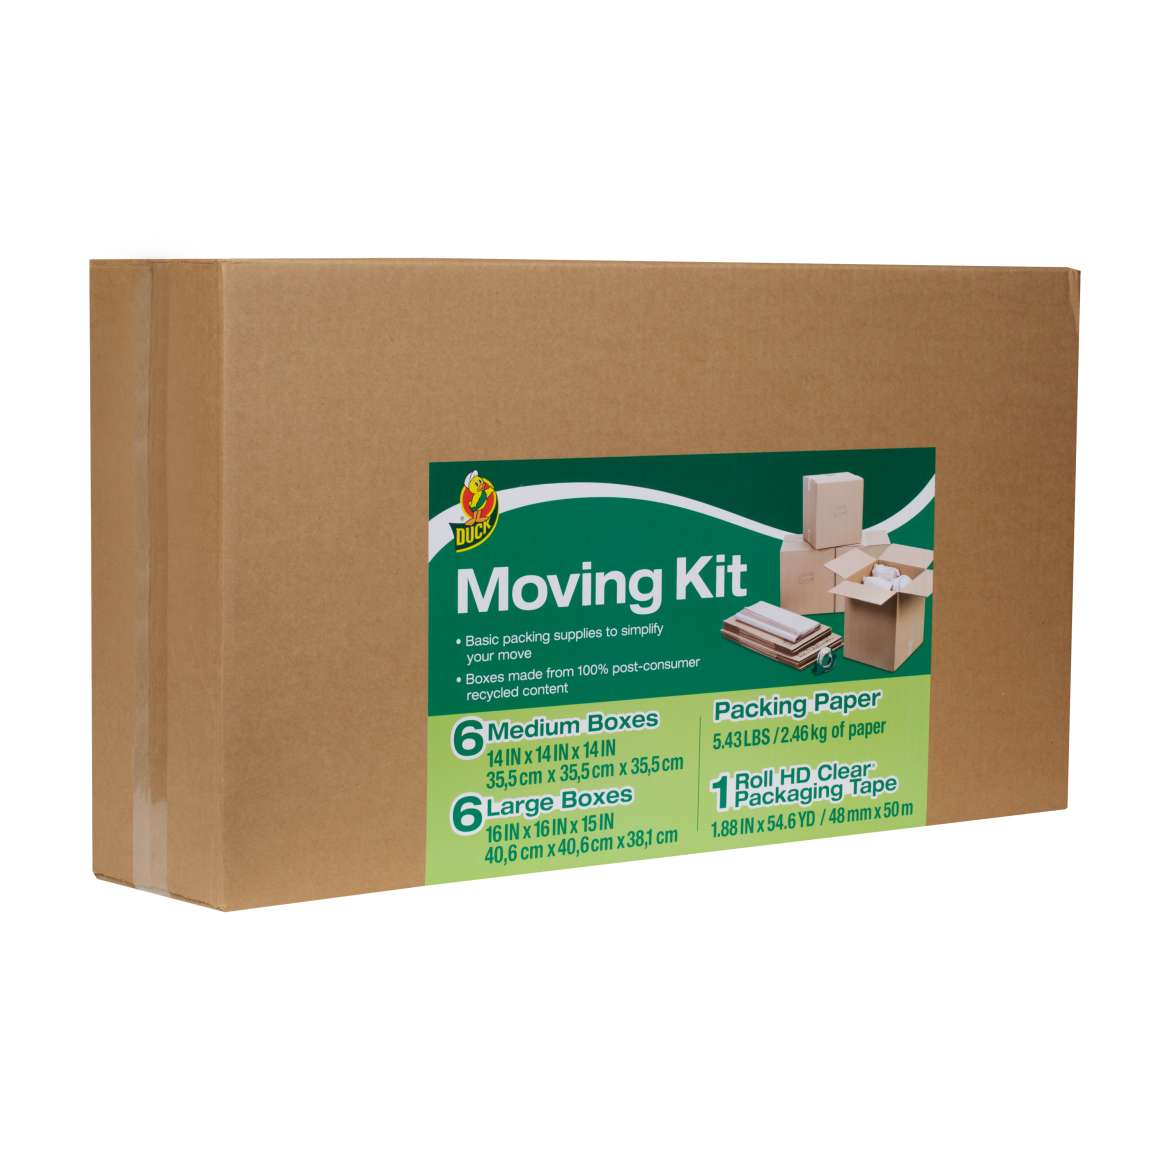 Duck® Brand Moving Kit - Includes Packing Paper, Boxes and Packing Tape Image